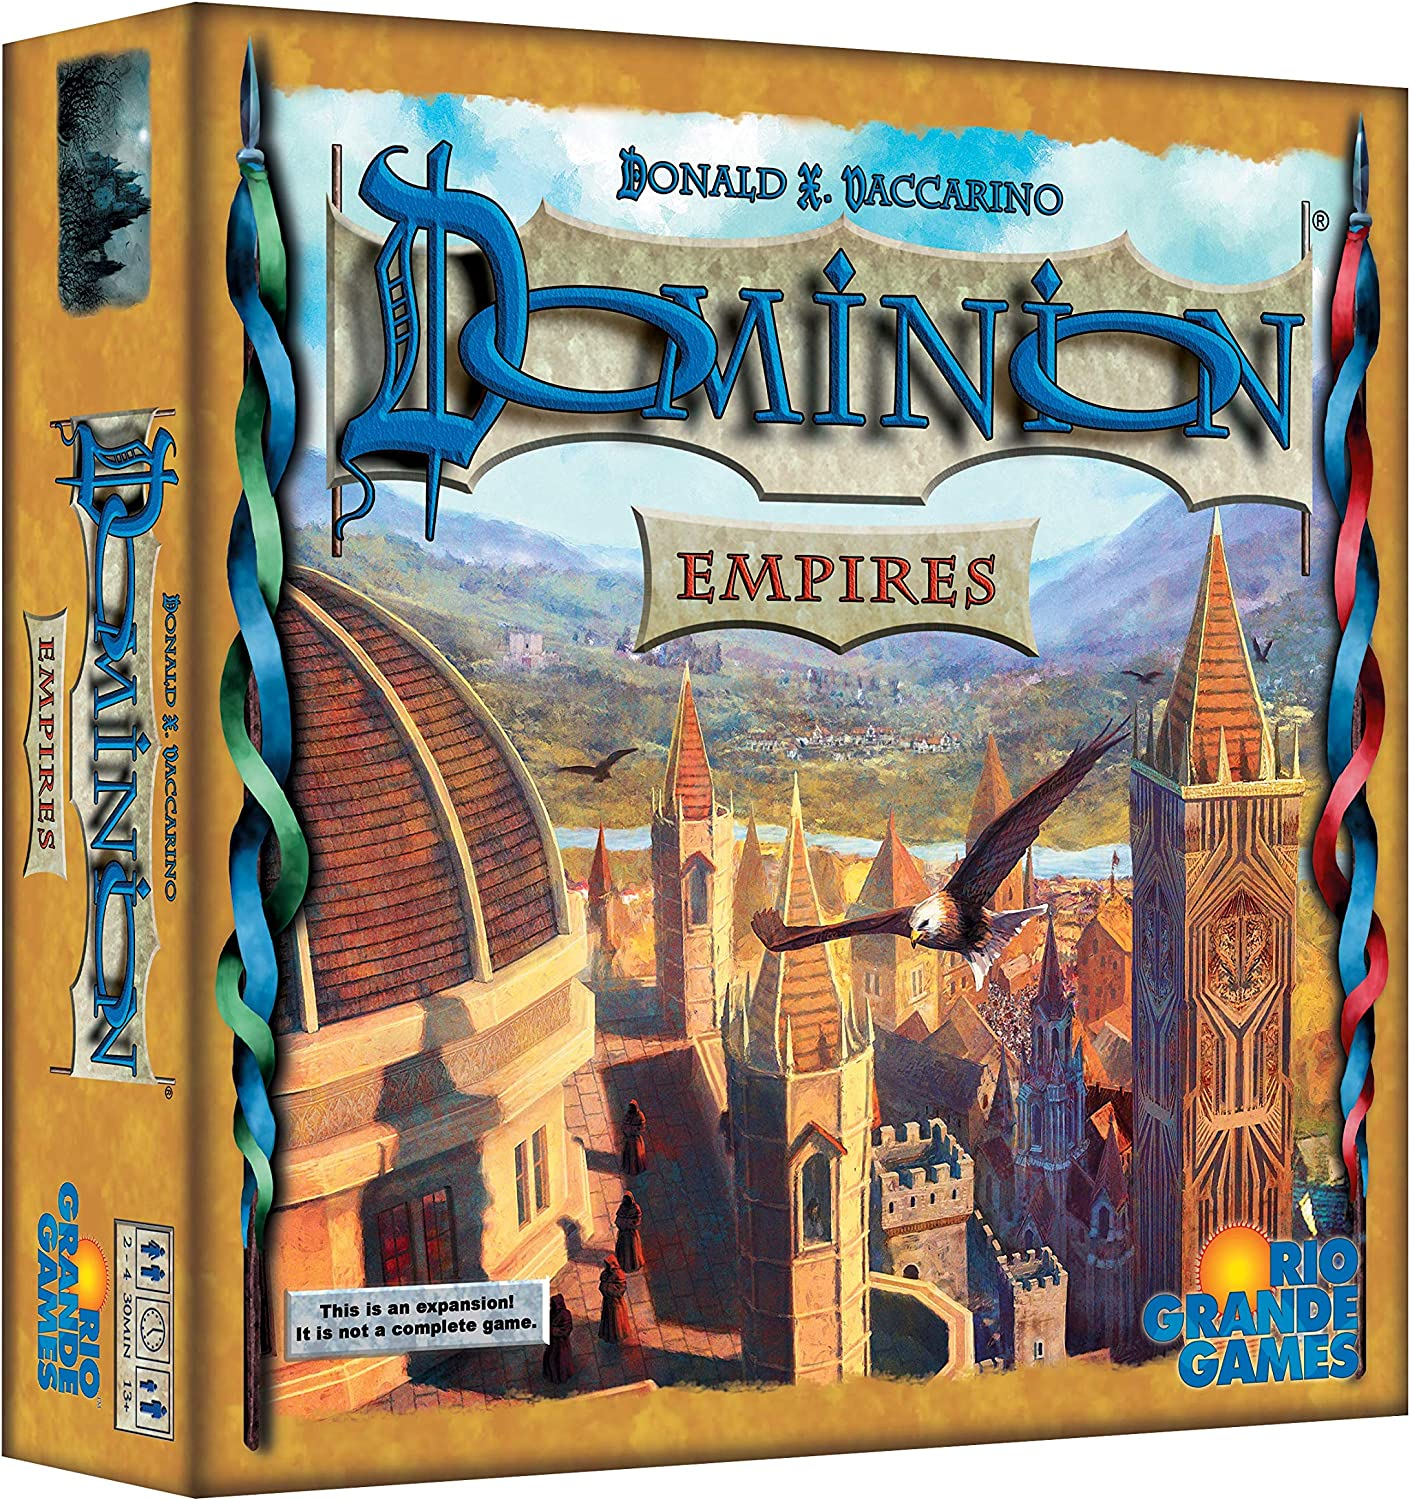 Rio Grande Games - Dominion Expansion Seaside: Amazon.es: Juguetes y juegos